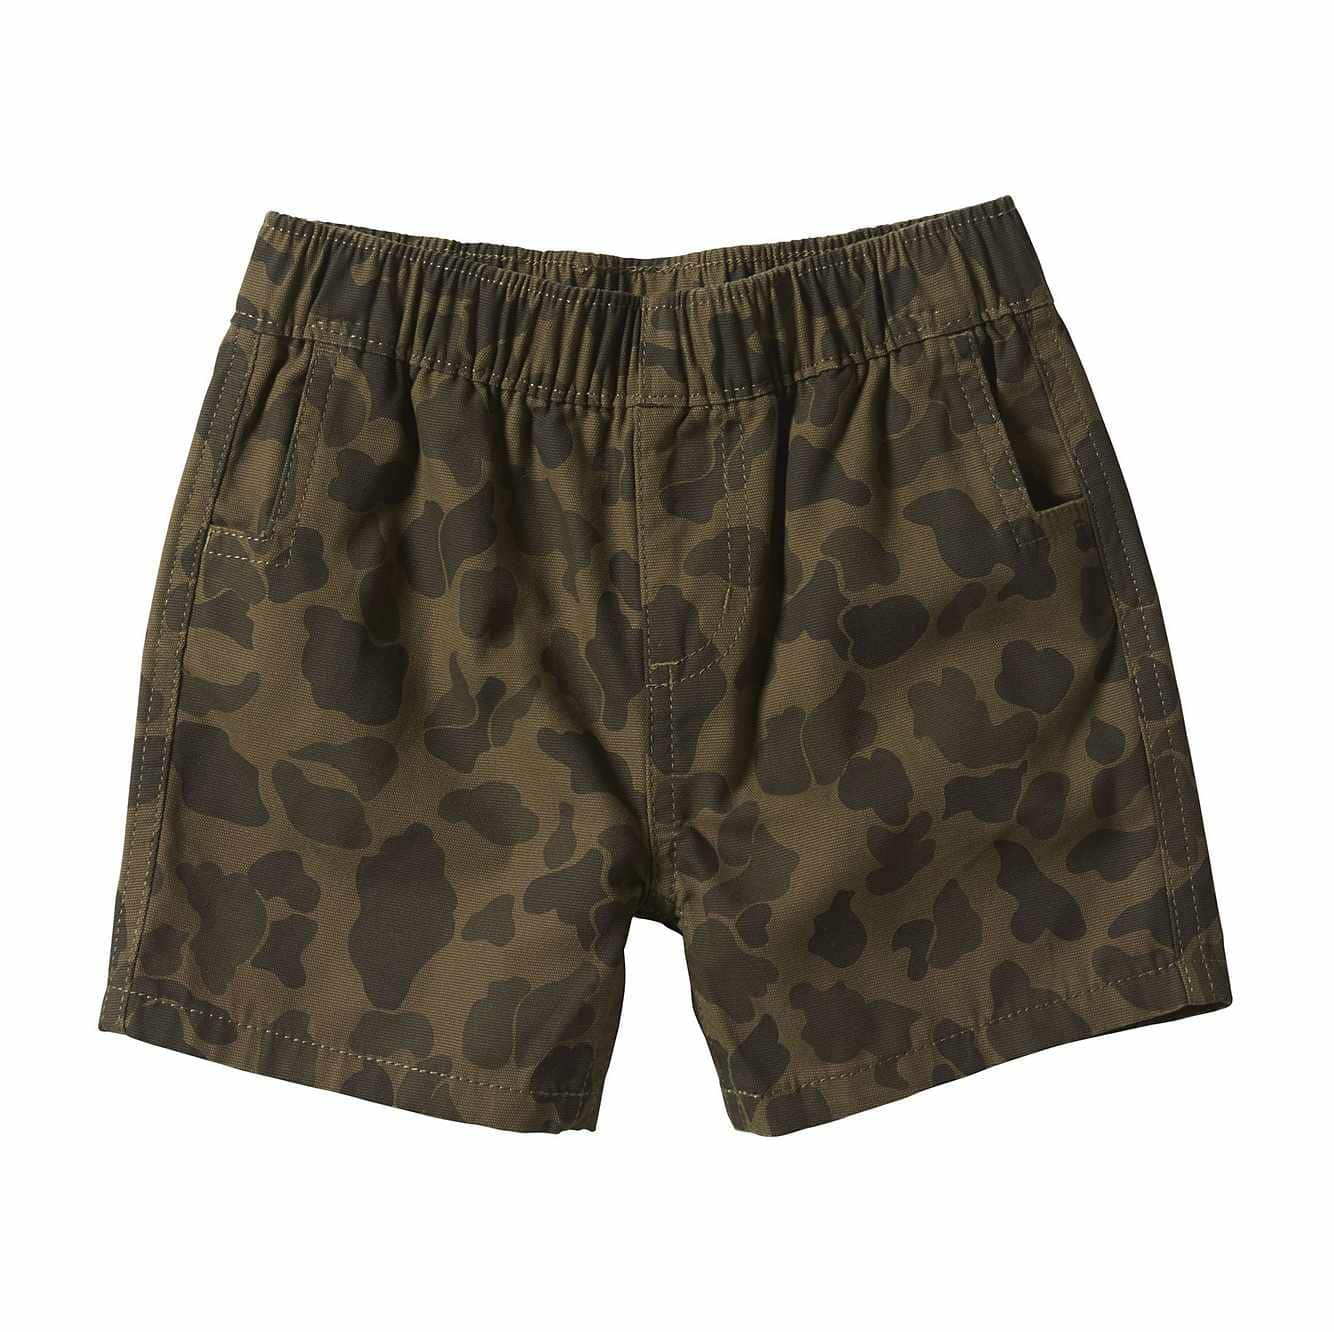 Picture of Camo Ripstop Short in Green Camo